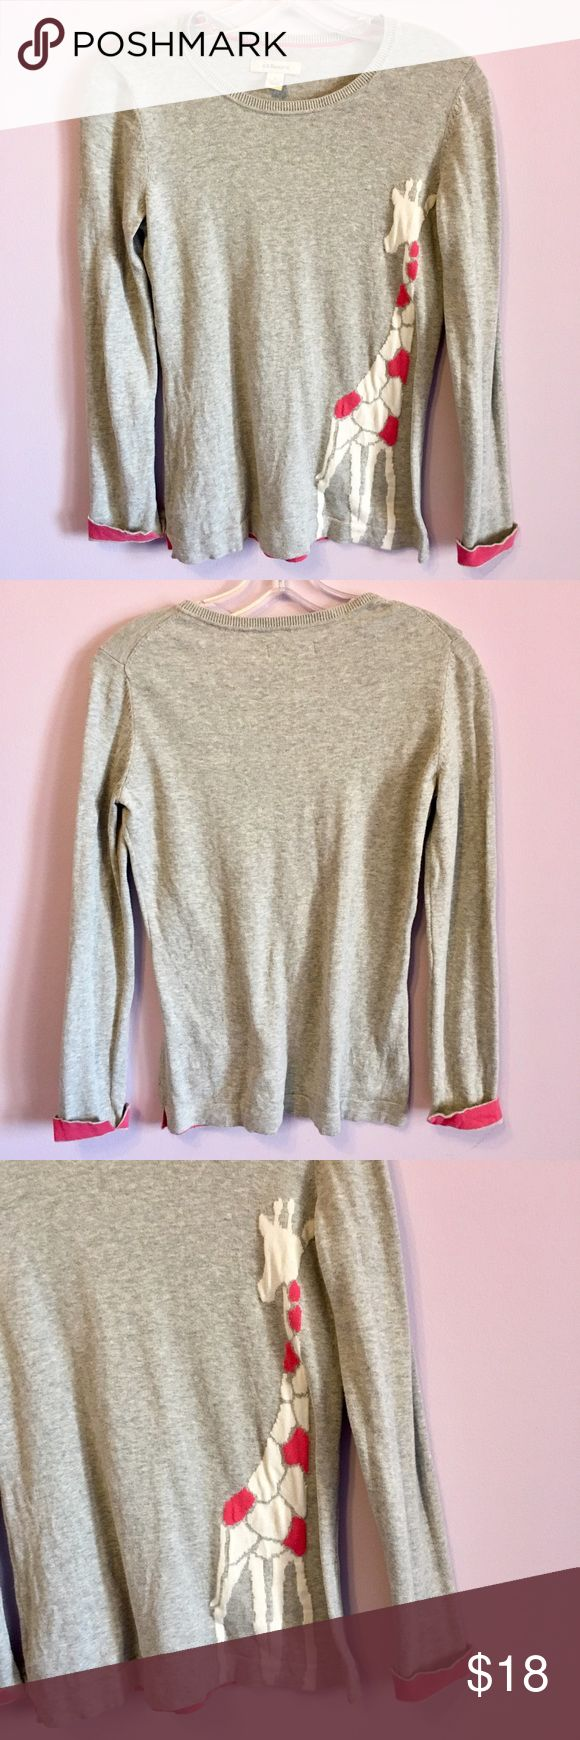 100% Cotton Giraffe Sweater 100% cotton gray sweater with a pink and white giraffe design. The cuffs roll up and are pink underneath or can be rolled down so the whole sleeve appears as a uniform gray color. Good condition. TTS. GH Bass & Co. Sweaters Crew & Scoop Necks